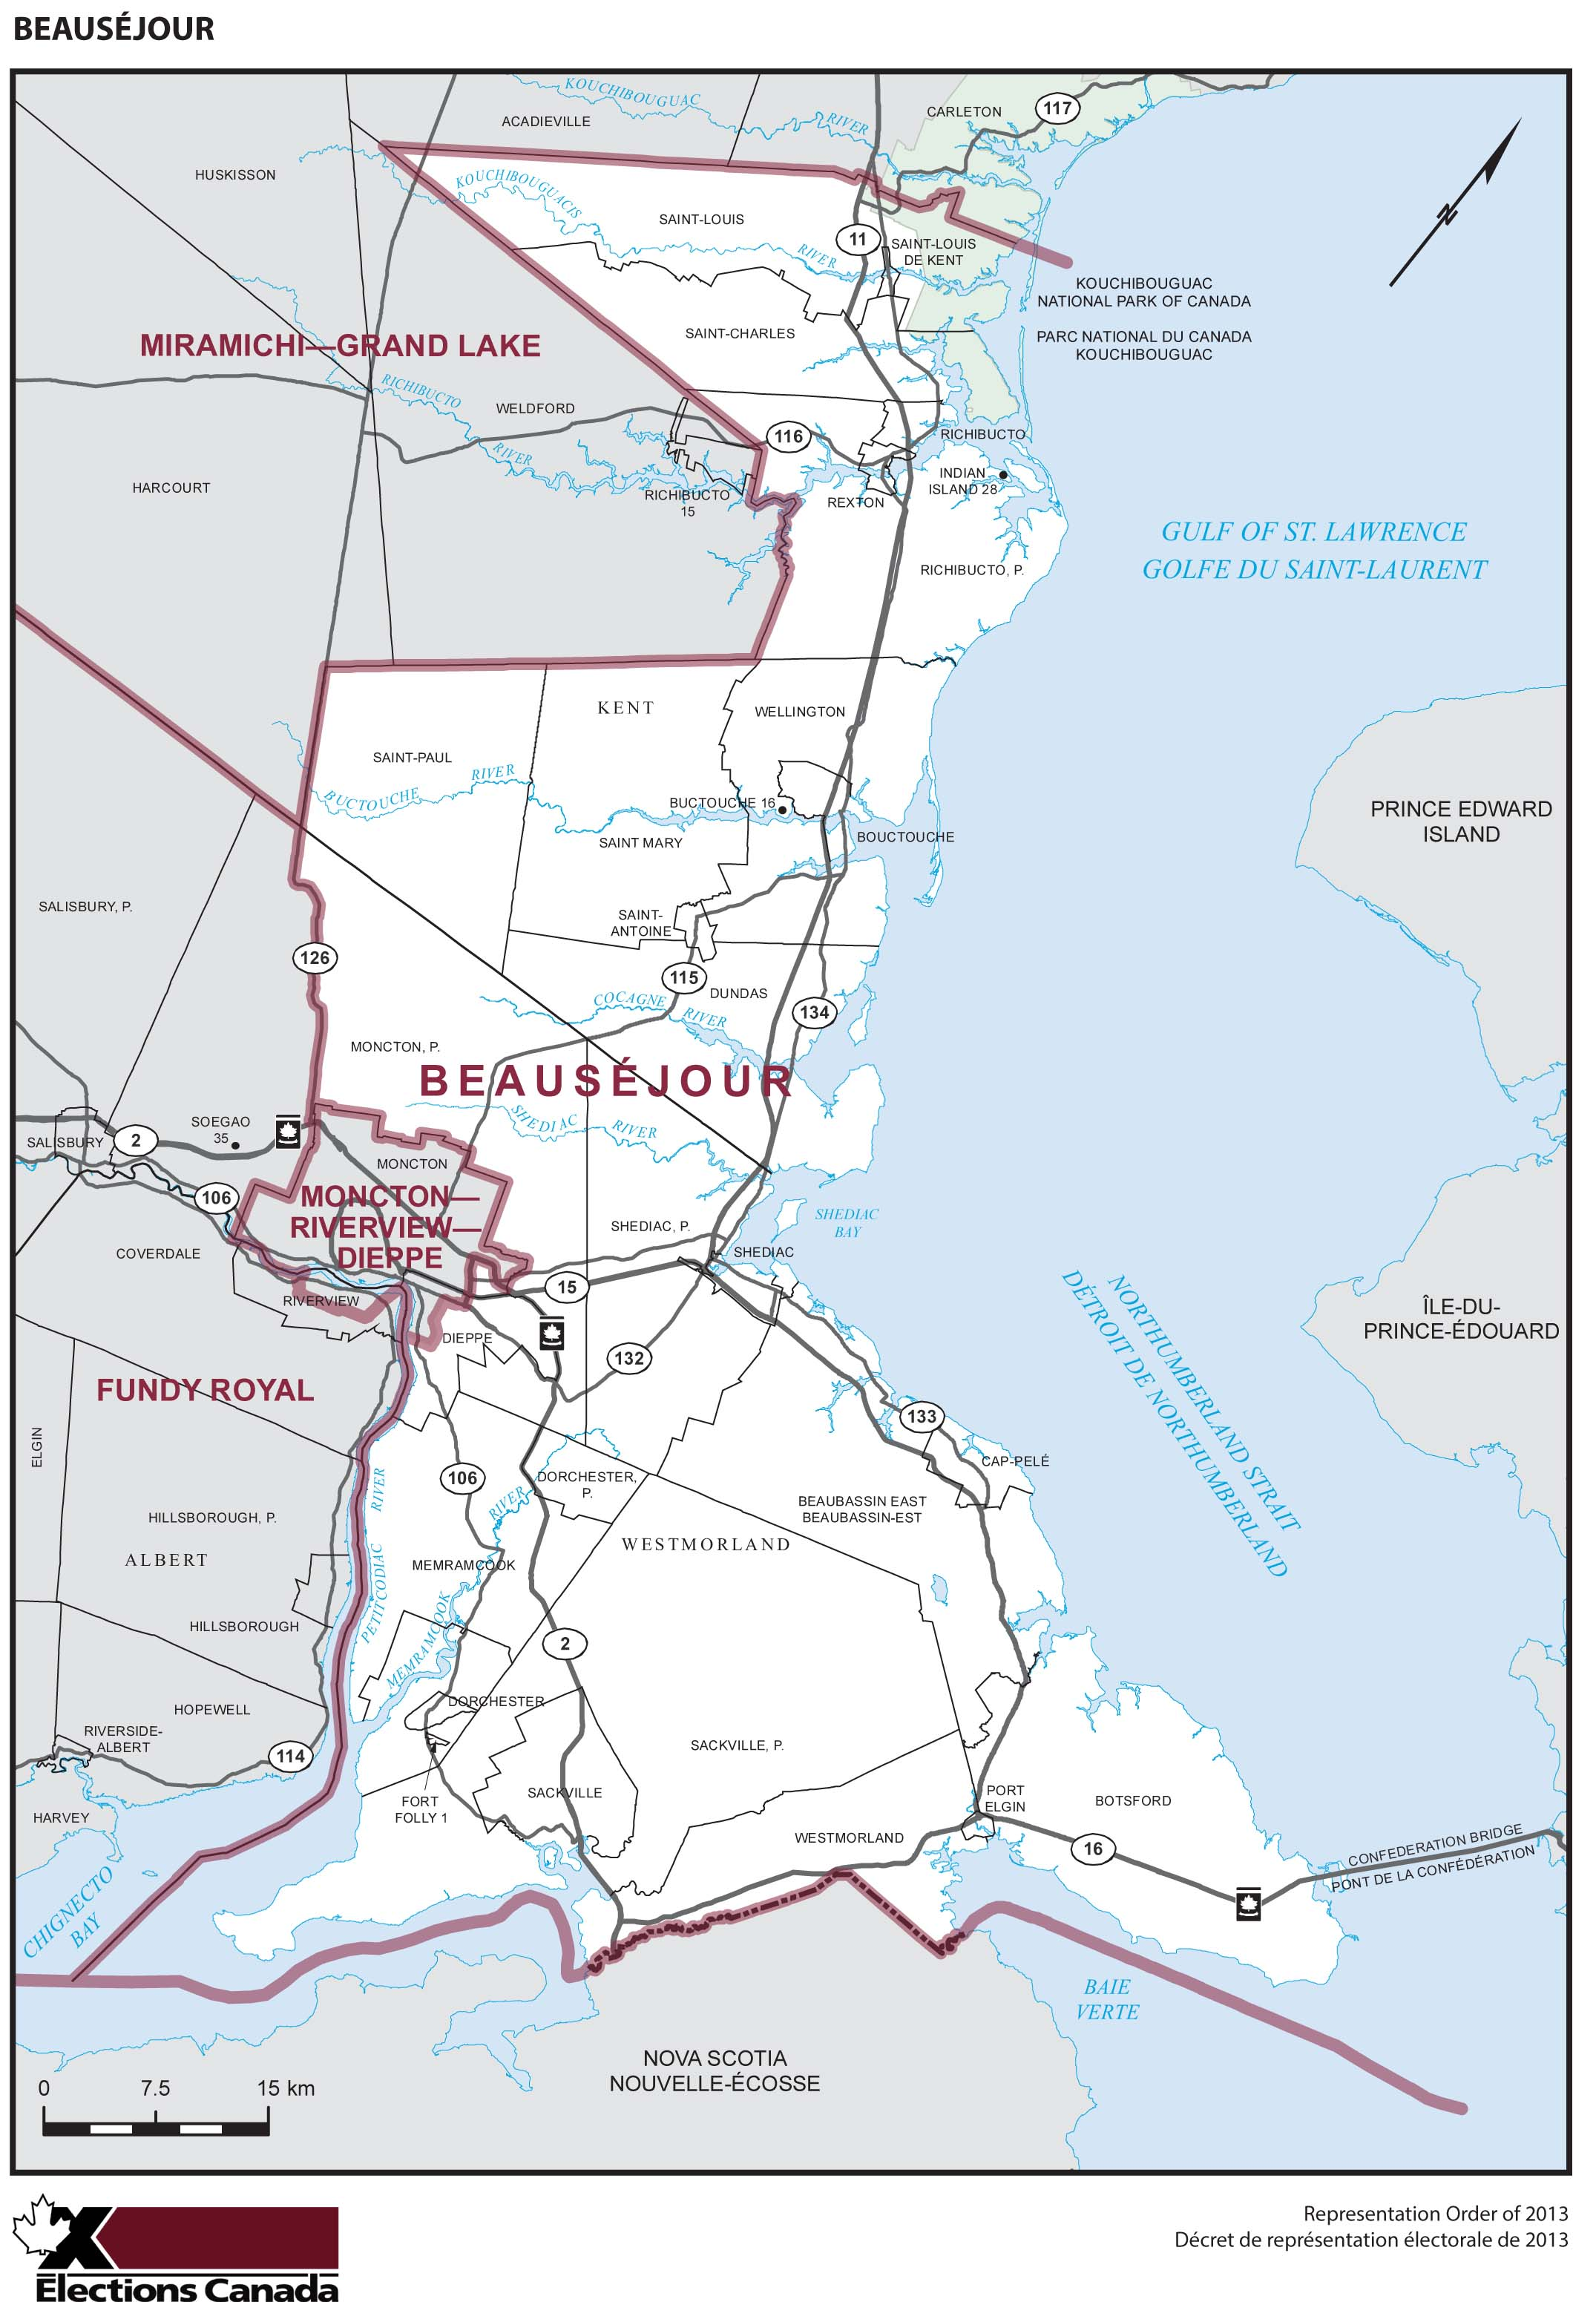 Map: Beauséjour, Federal electoral district, 2013 Representation Order (in white), New Brunswick